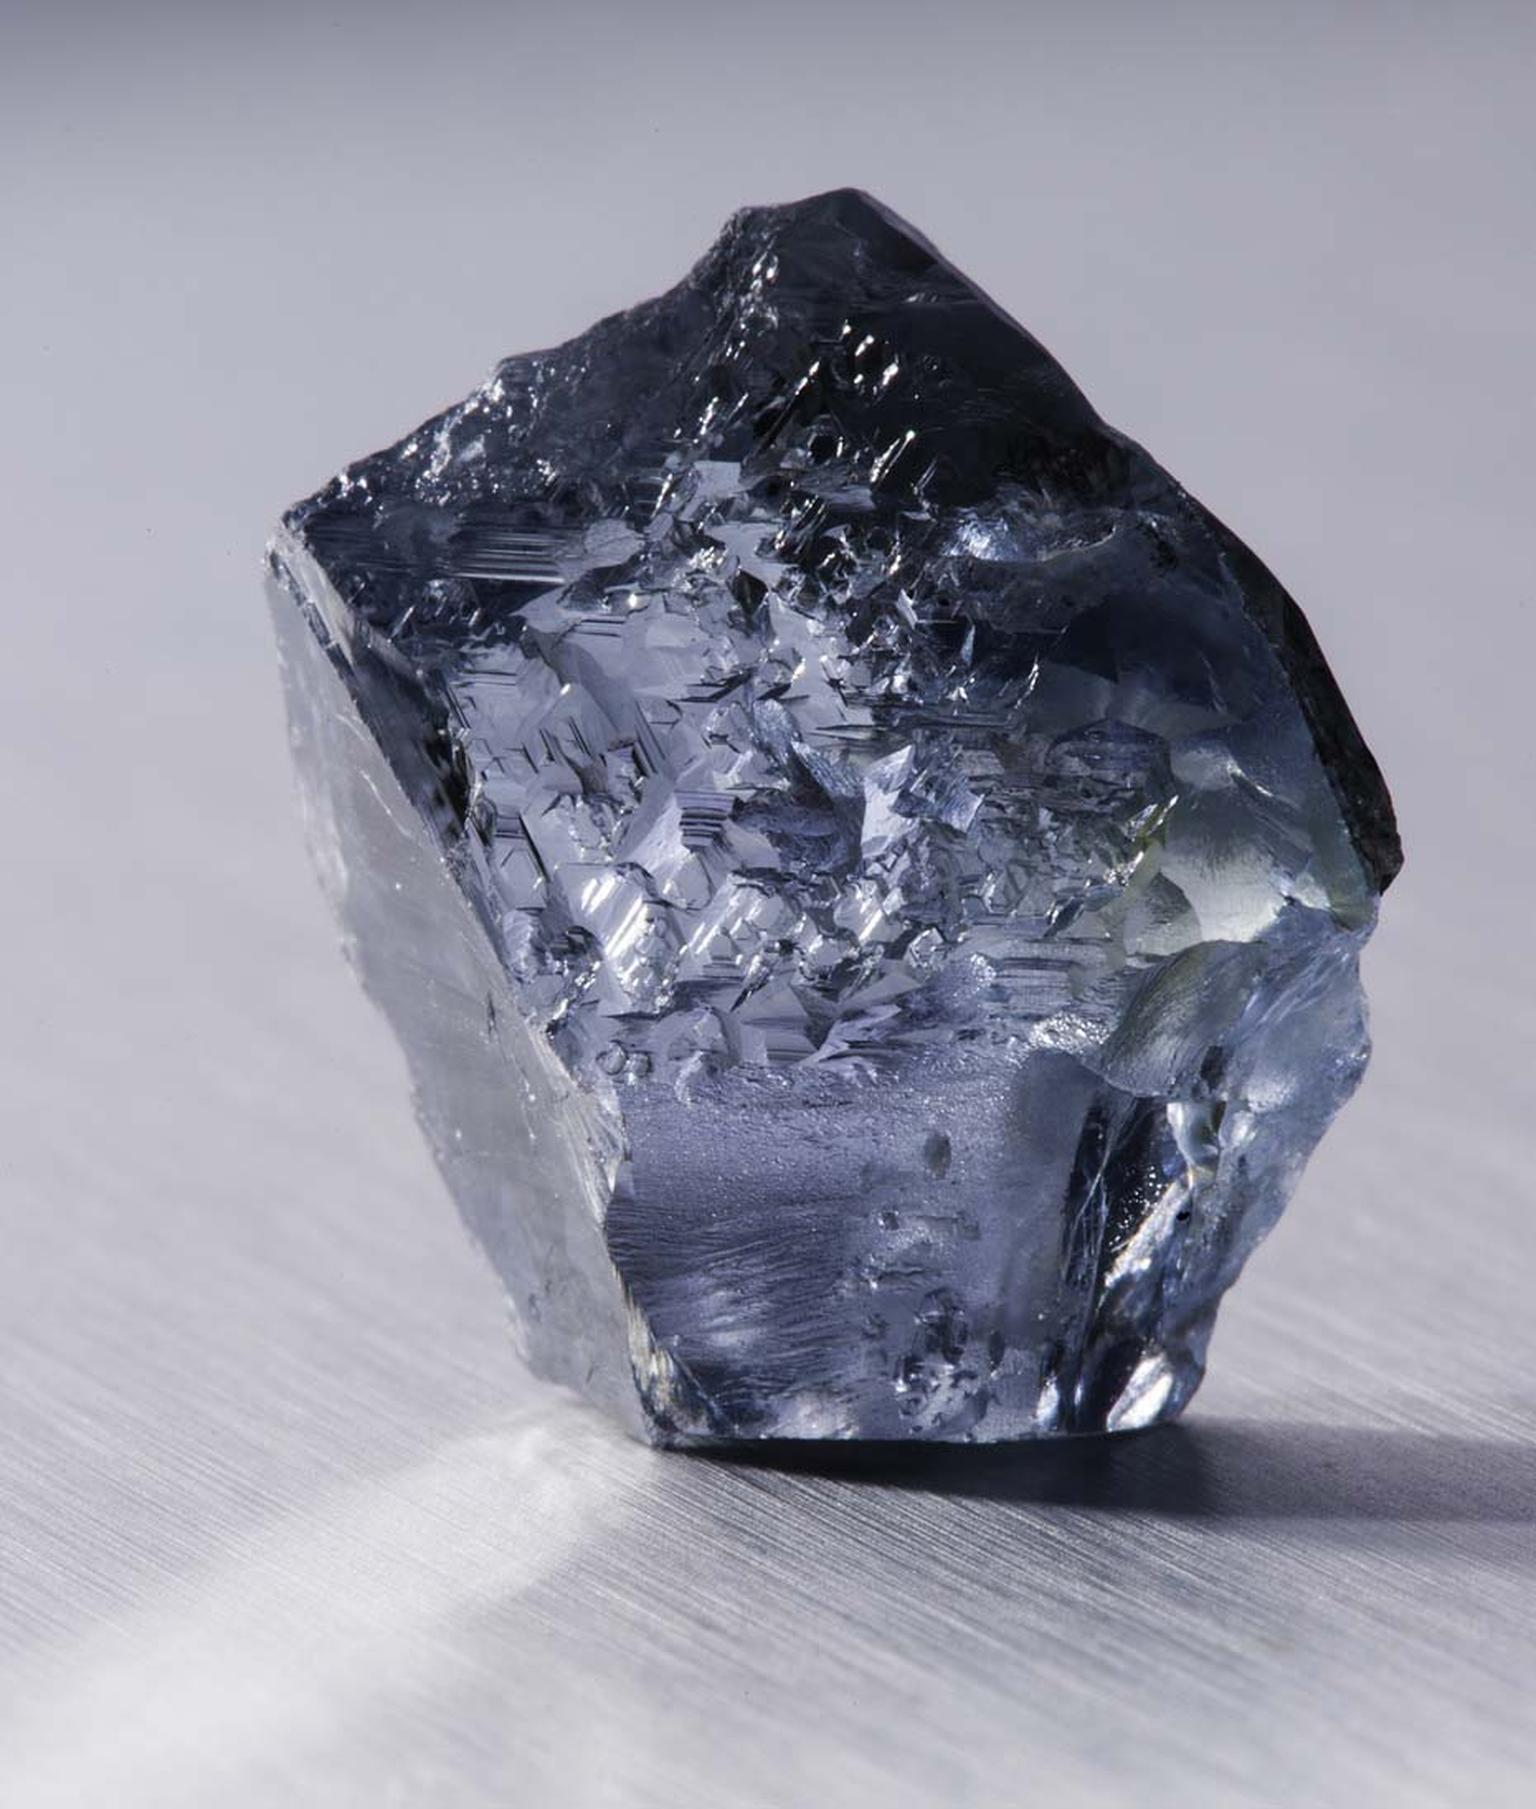 Petra Diamonds recovered this exceptional 29.62ct rough blue diamond in January 2014 at its Cullinan mine in South Africa.